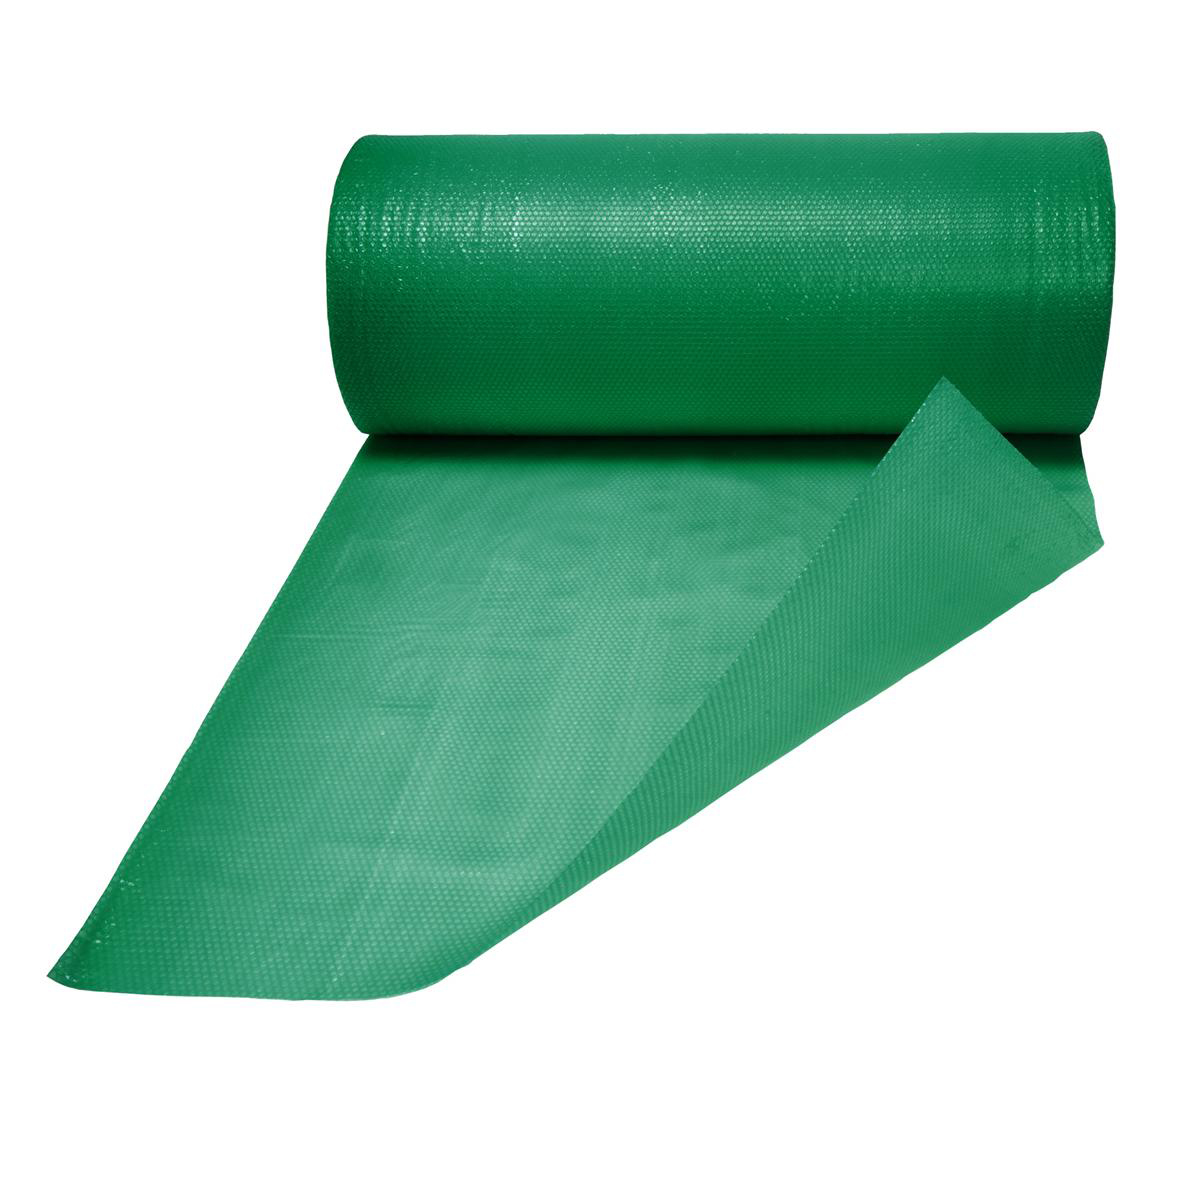 Jiffy Green Bubble Wrap Recycled Diam. 10mmxH5mm 750mmx75m Green Ref BROE54008 DTP2019